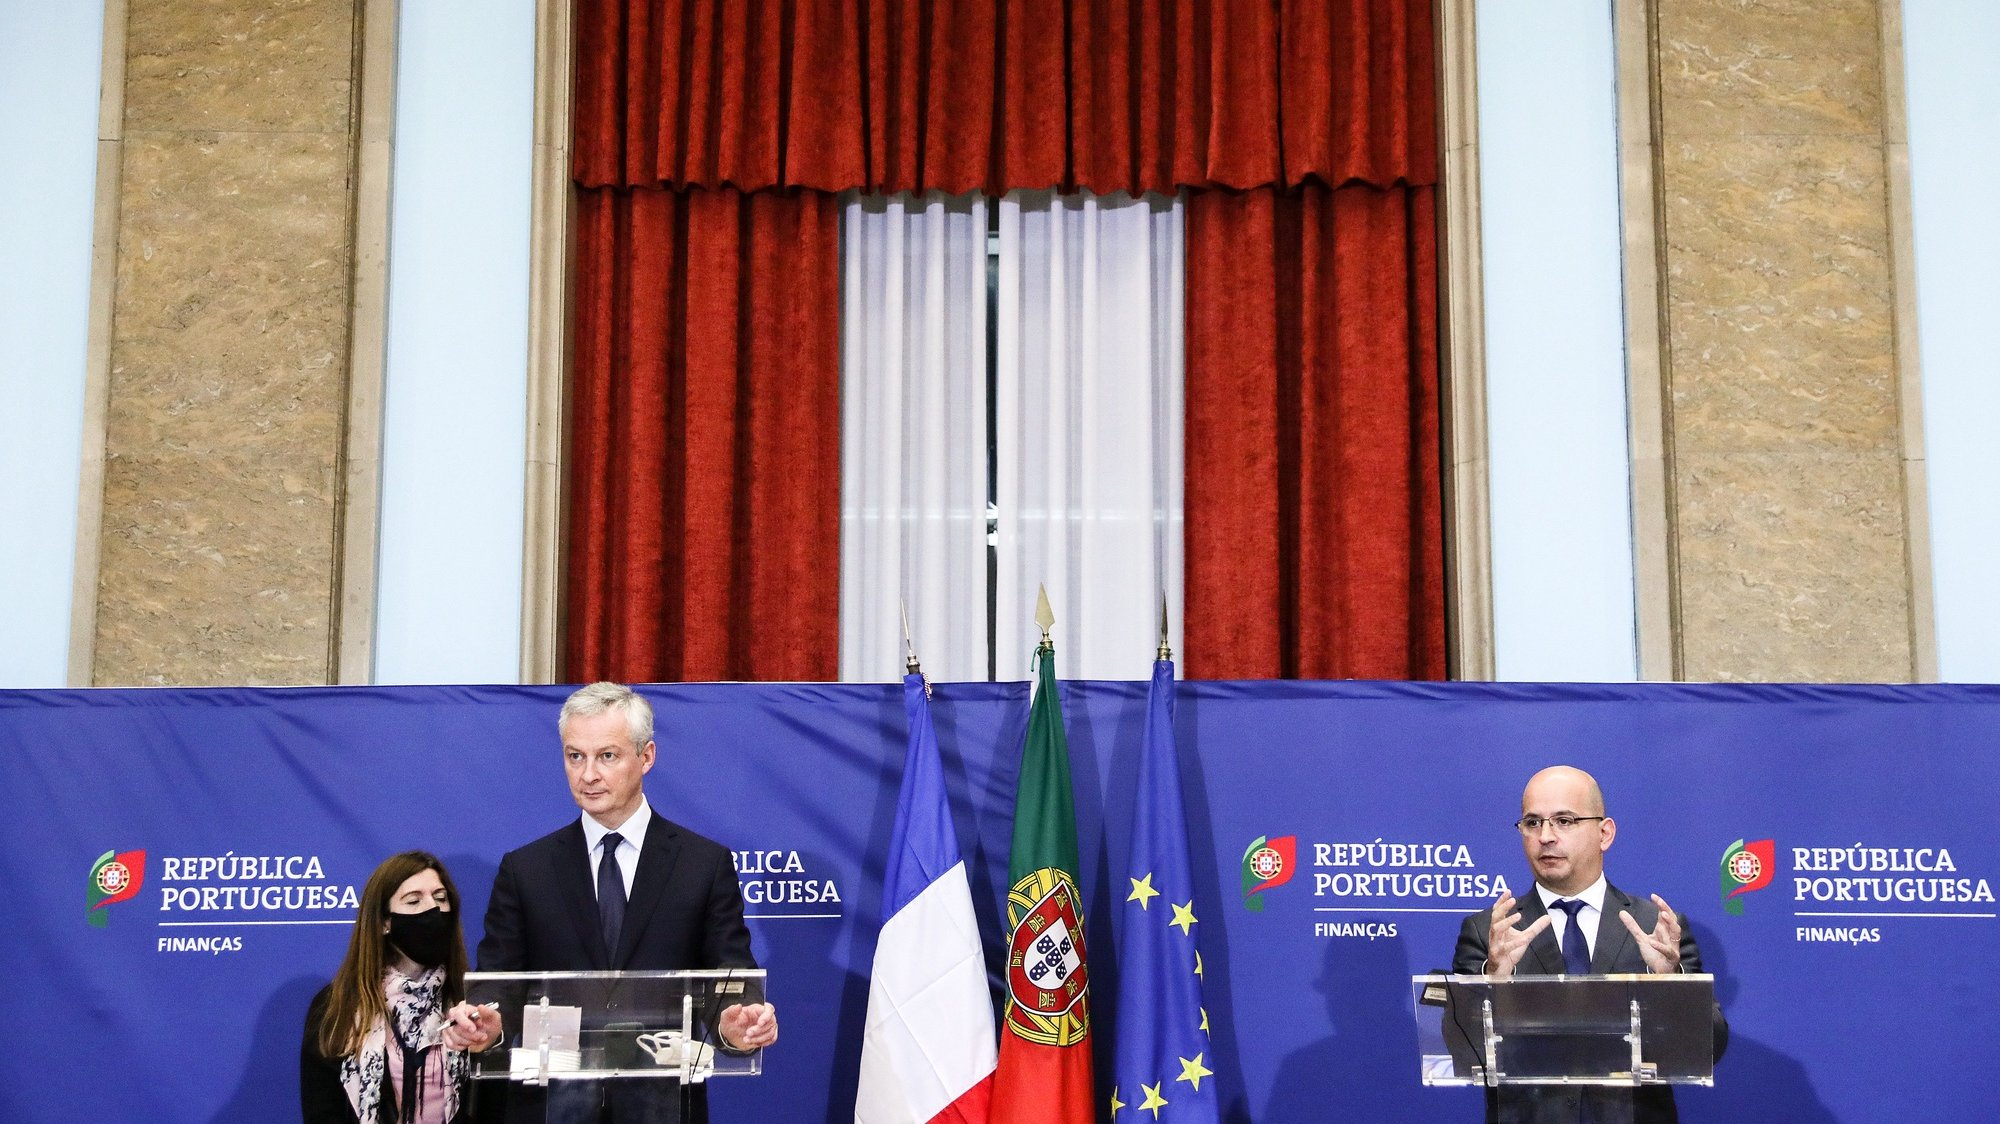 French Economy and Finance minister, Bruno Le Maire (L), during the press conference after his meeting with his Portuguese counterpart, Joao Leao (R), at the Finance ministry in downtown Lisbon, Portugal, 03rd November 2020. TIAGO PETINGA/LUSA